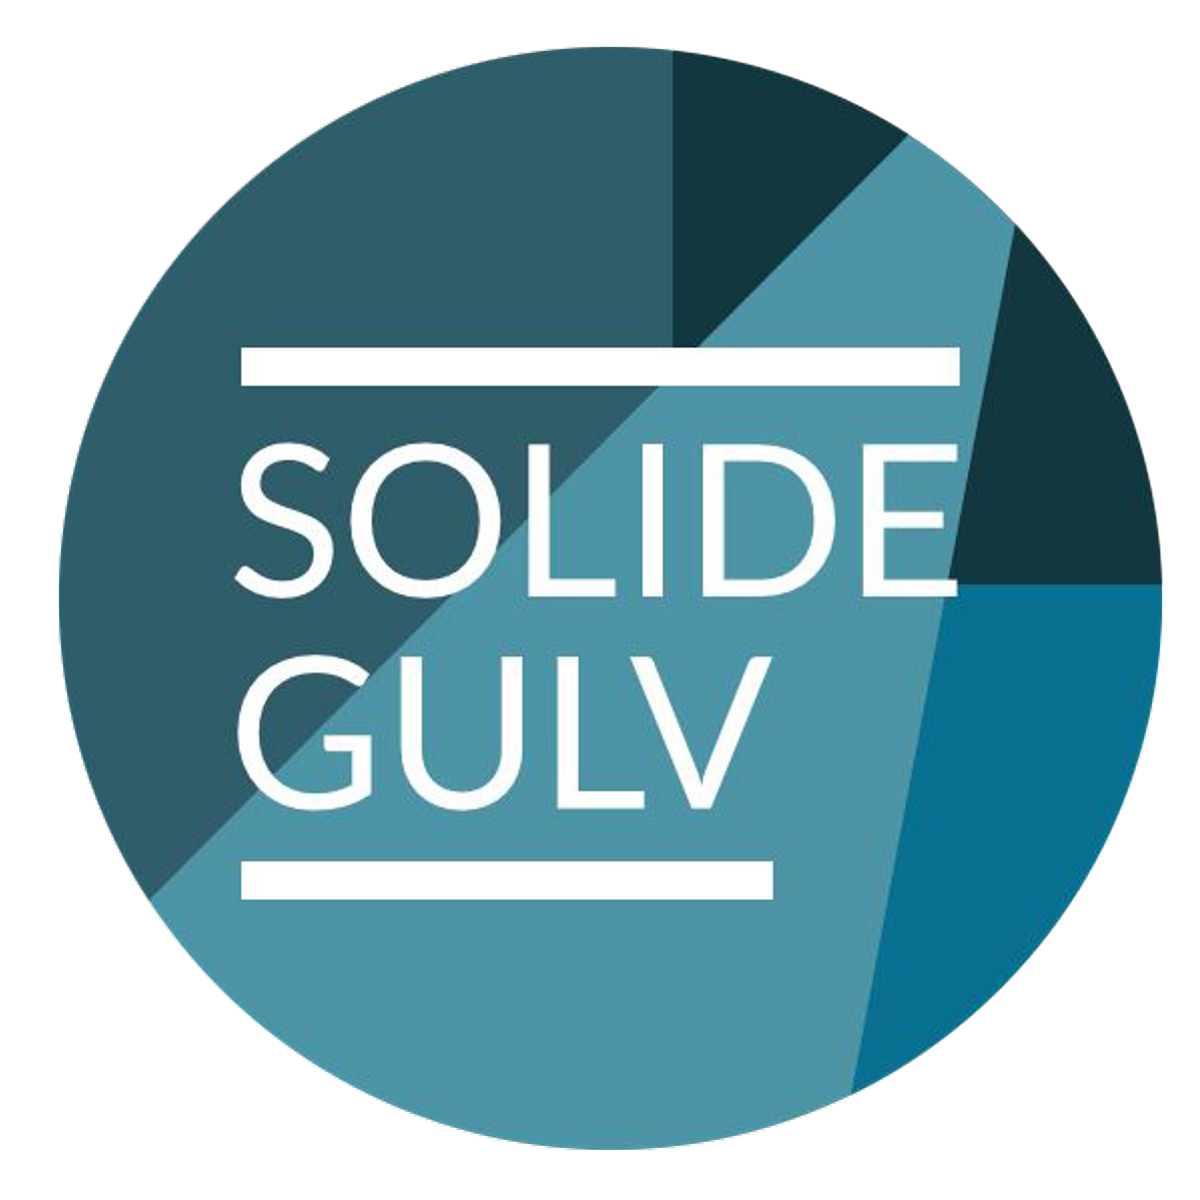 Logo, Solide Gulv AS